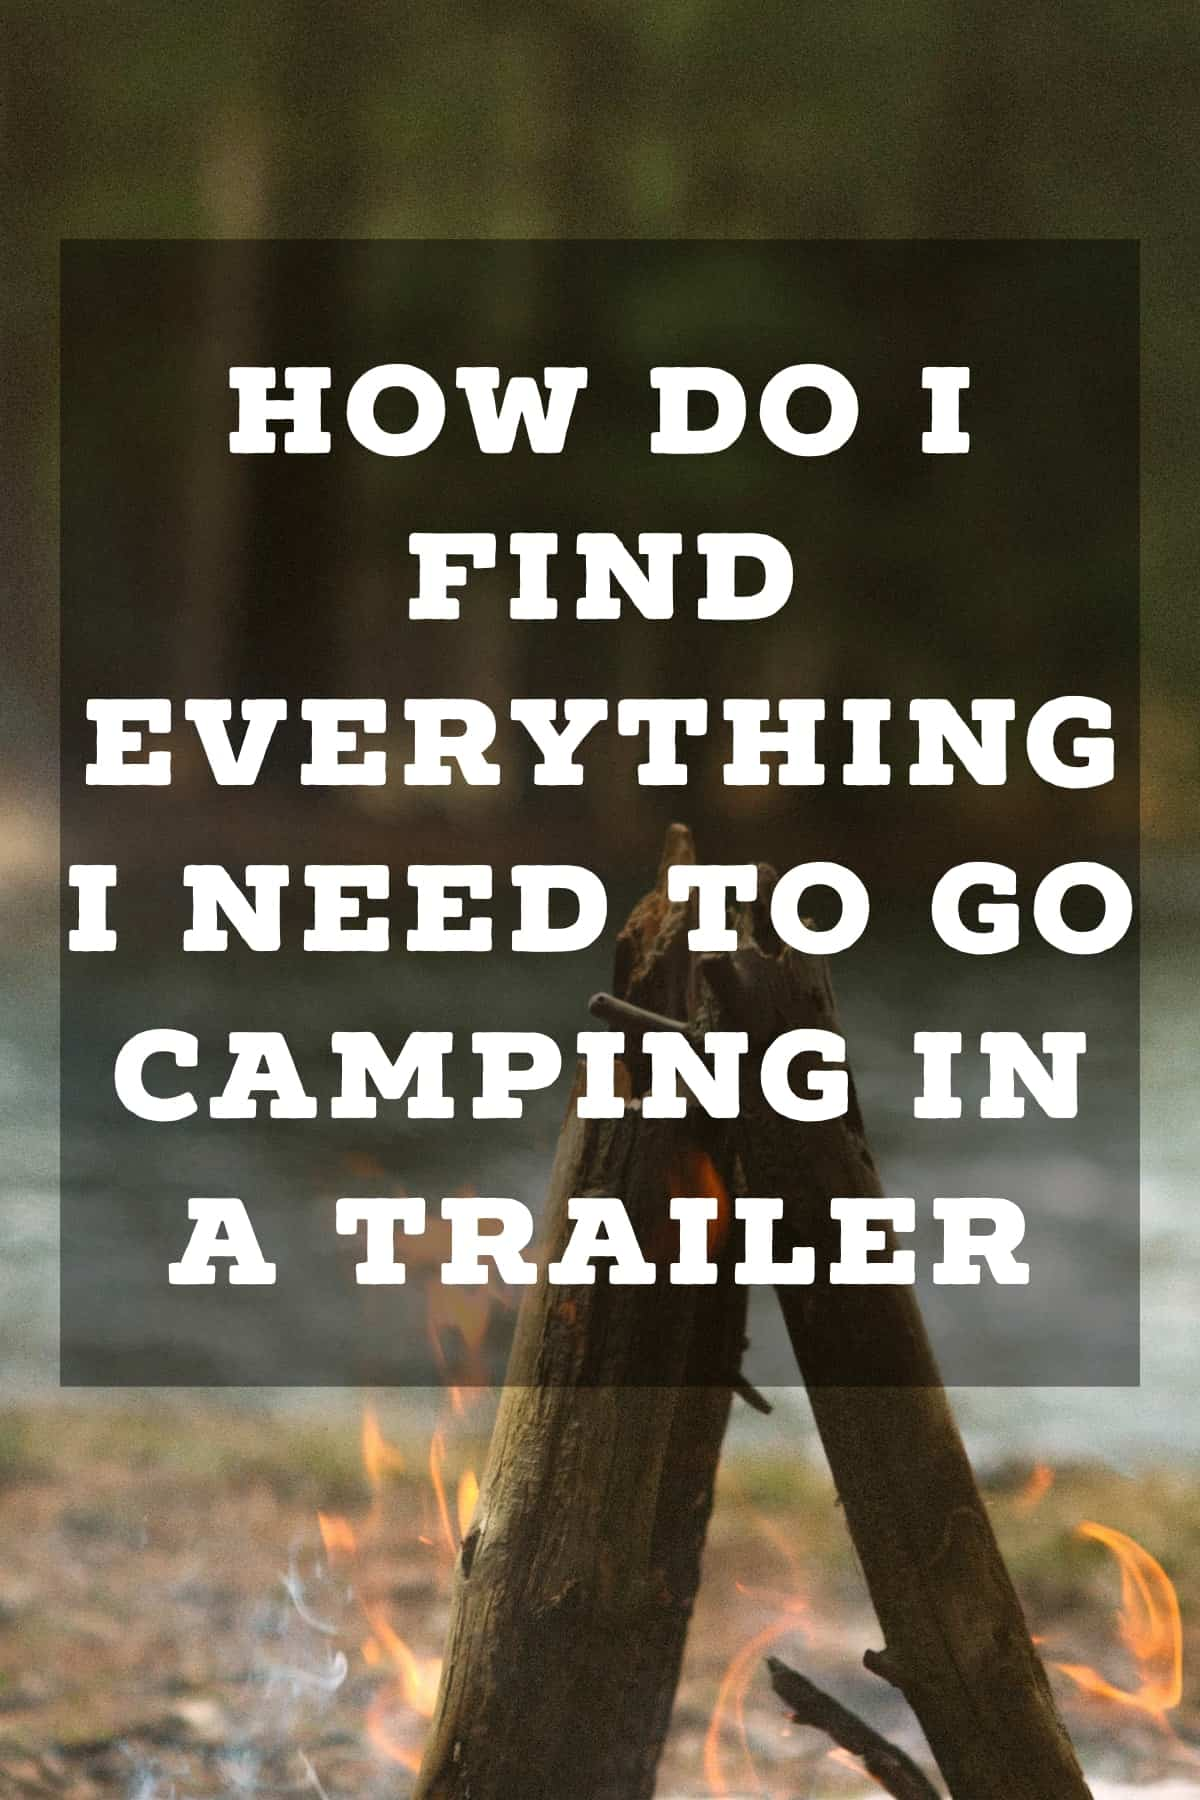 Pinterest image for How Do I Find Everything I Need To Go Camping in a Trailer